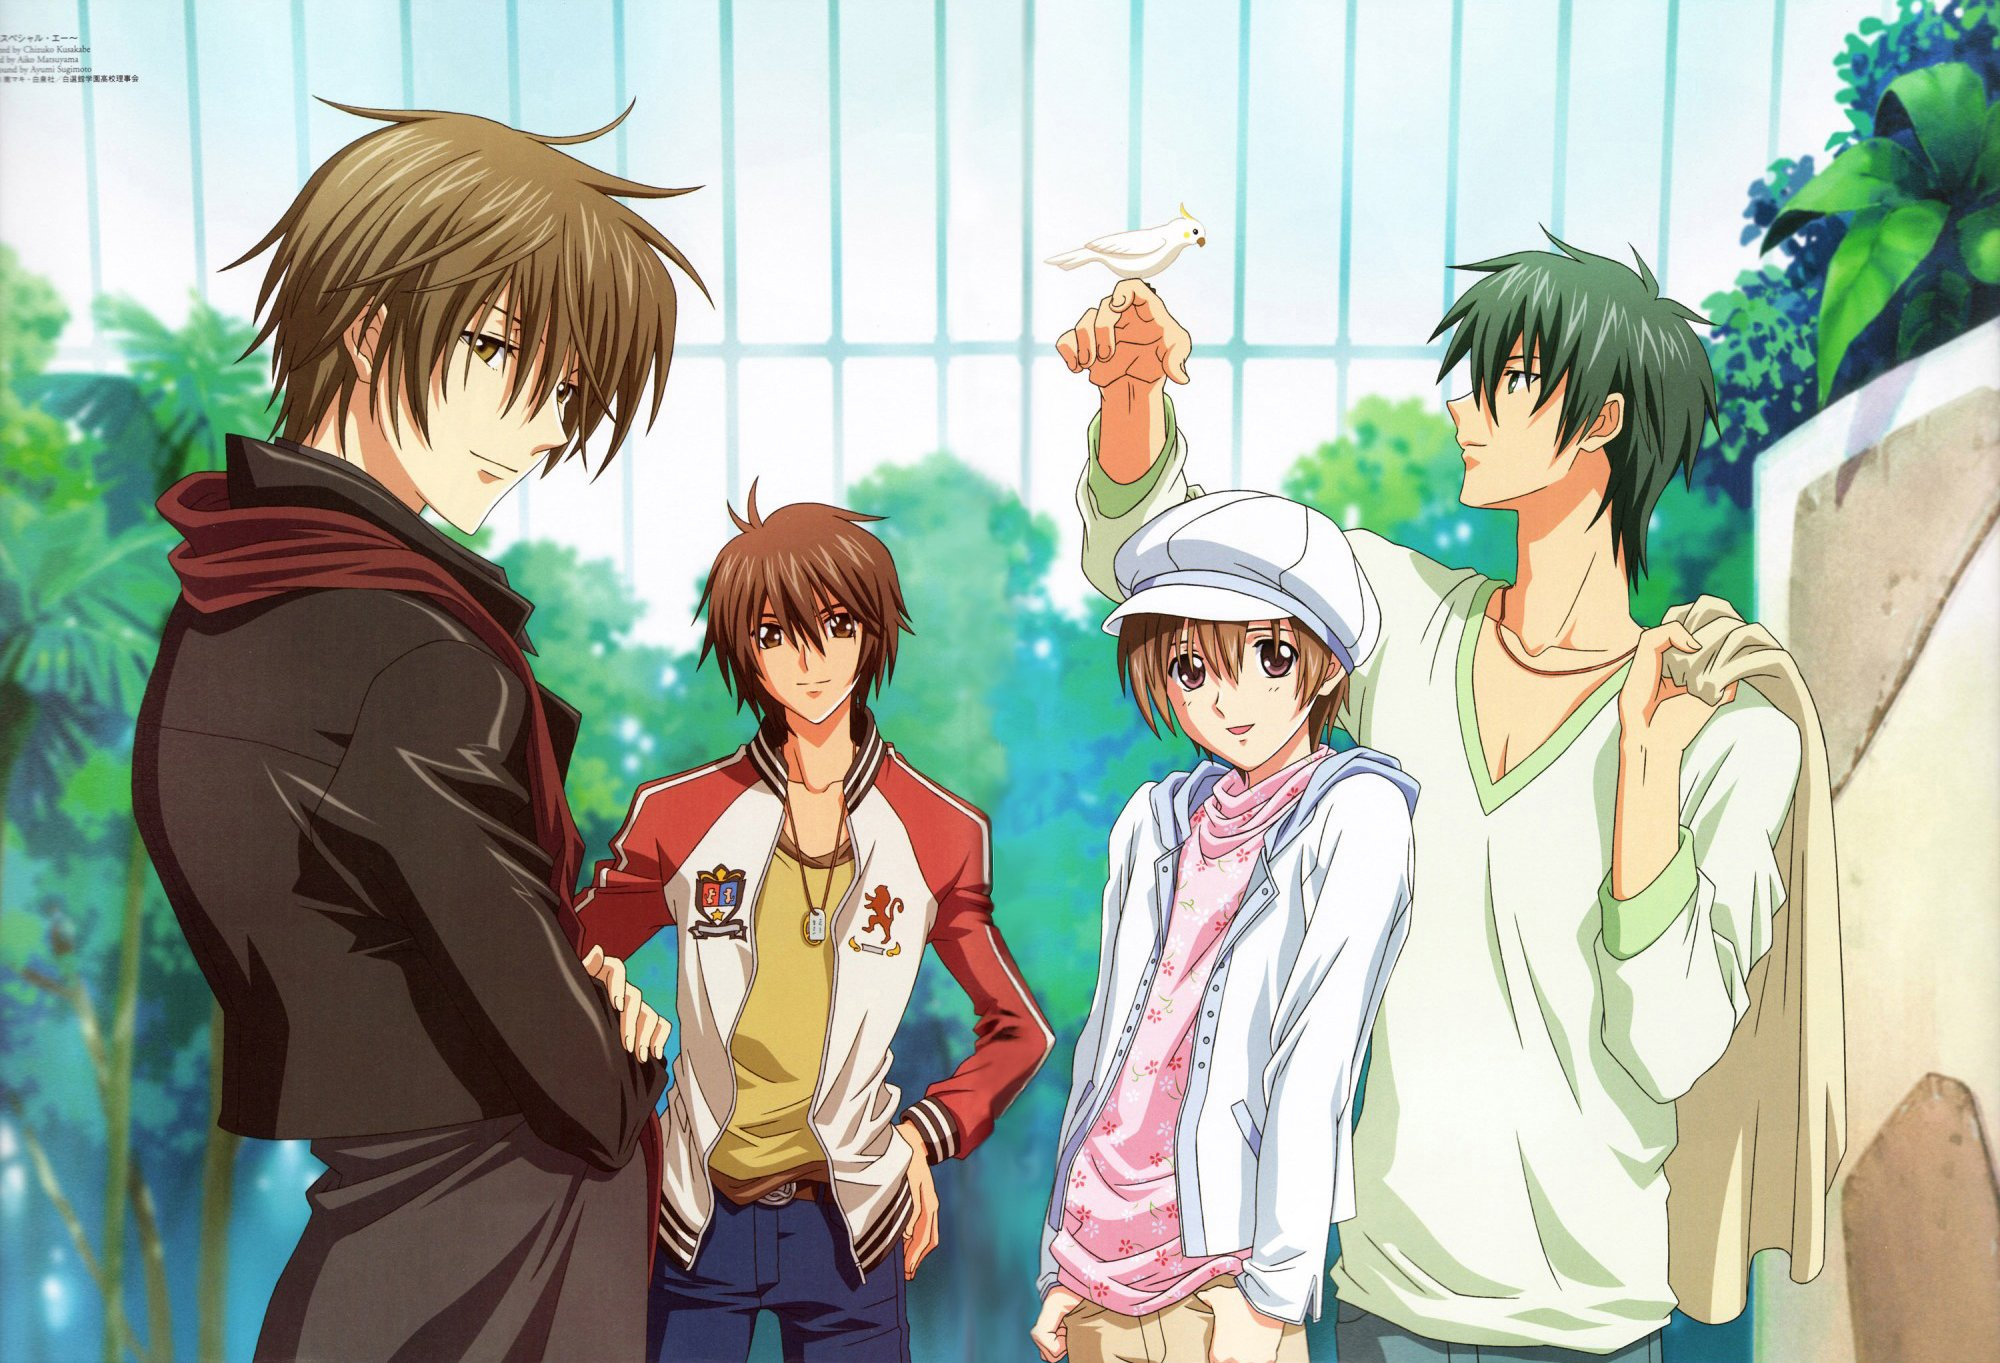 anime group of friends - Google Search | Anime group of ...  |Anime Group Of Friends Boys And Girls